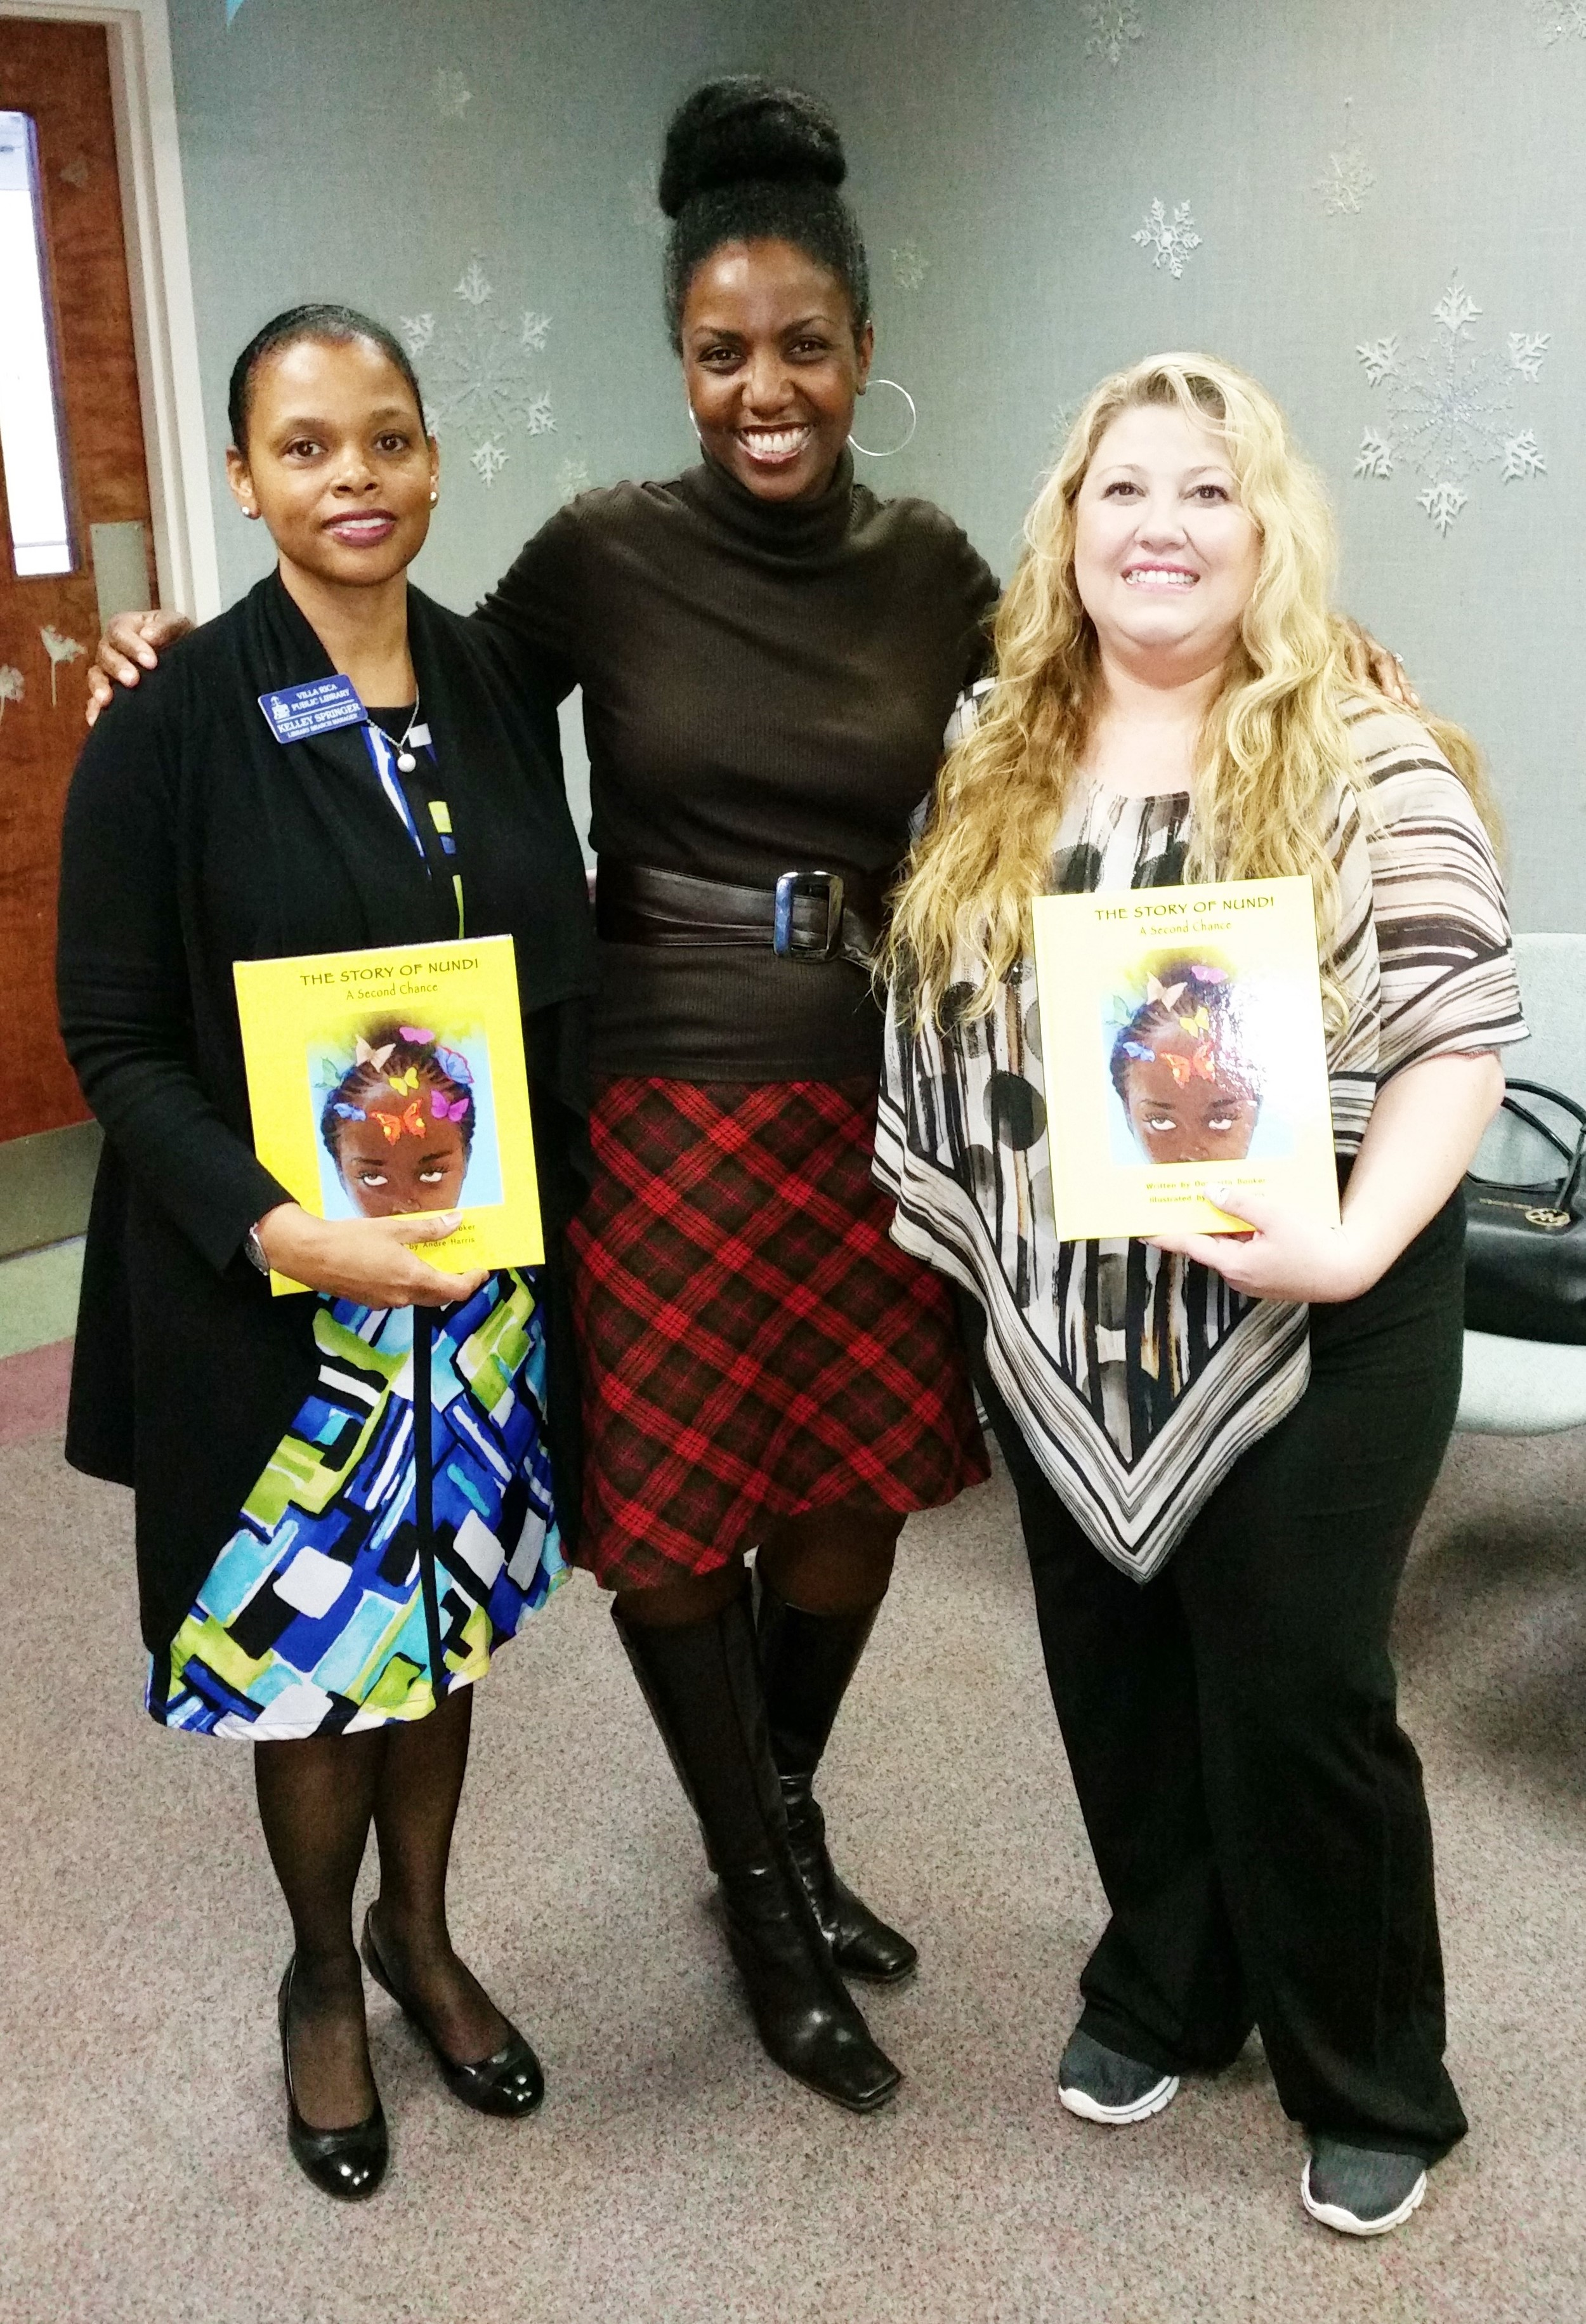 With Kelley Springer (Branch Manager) and Laura Frey (Library Children's Activities).